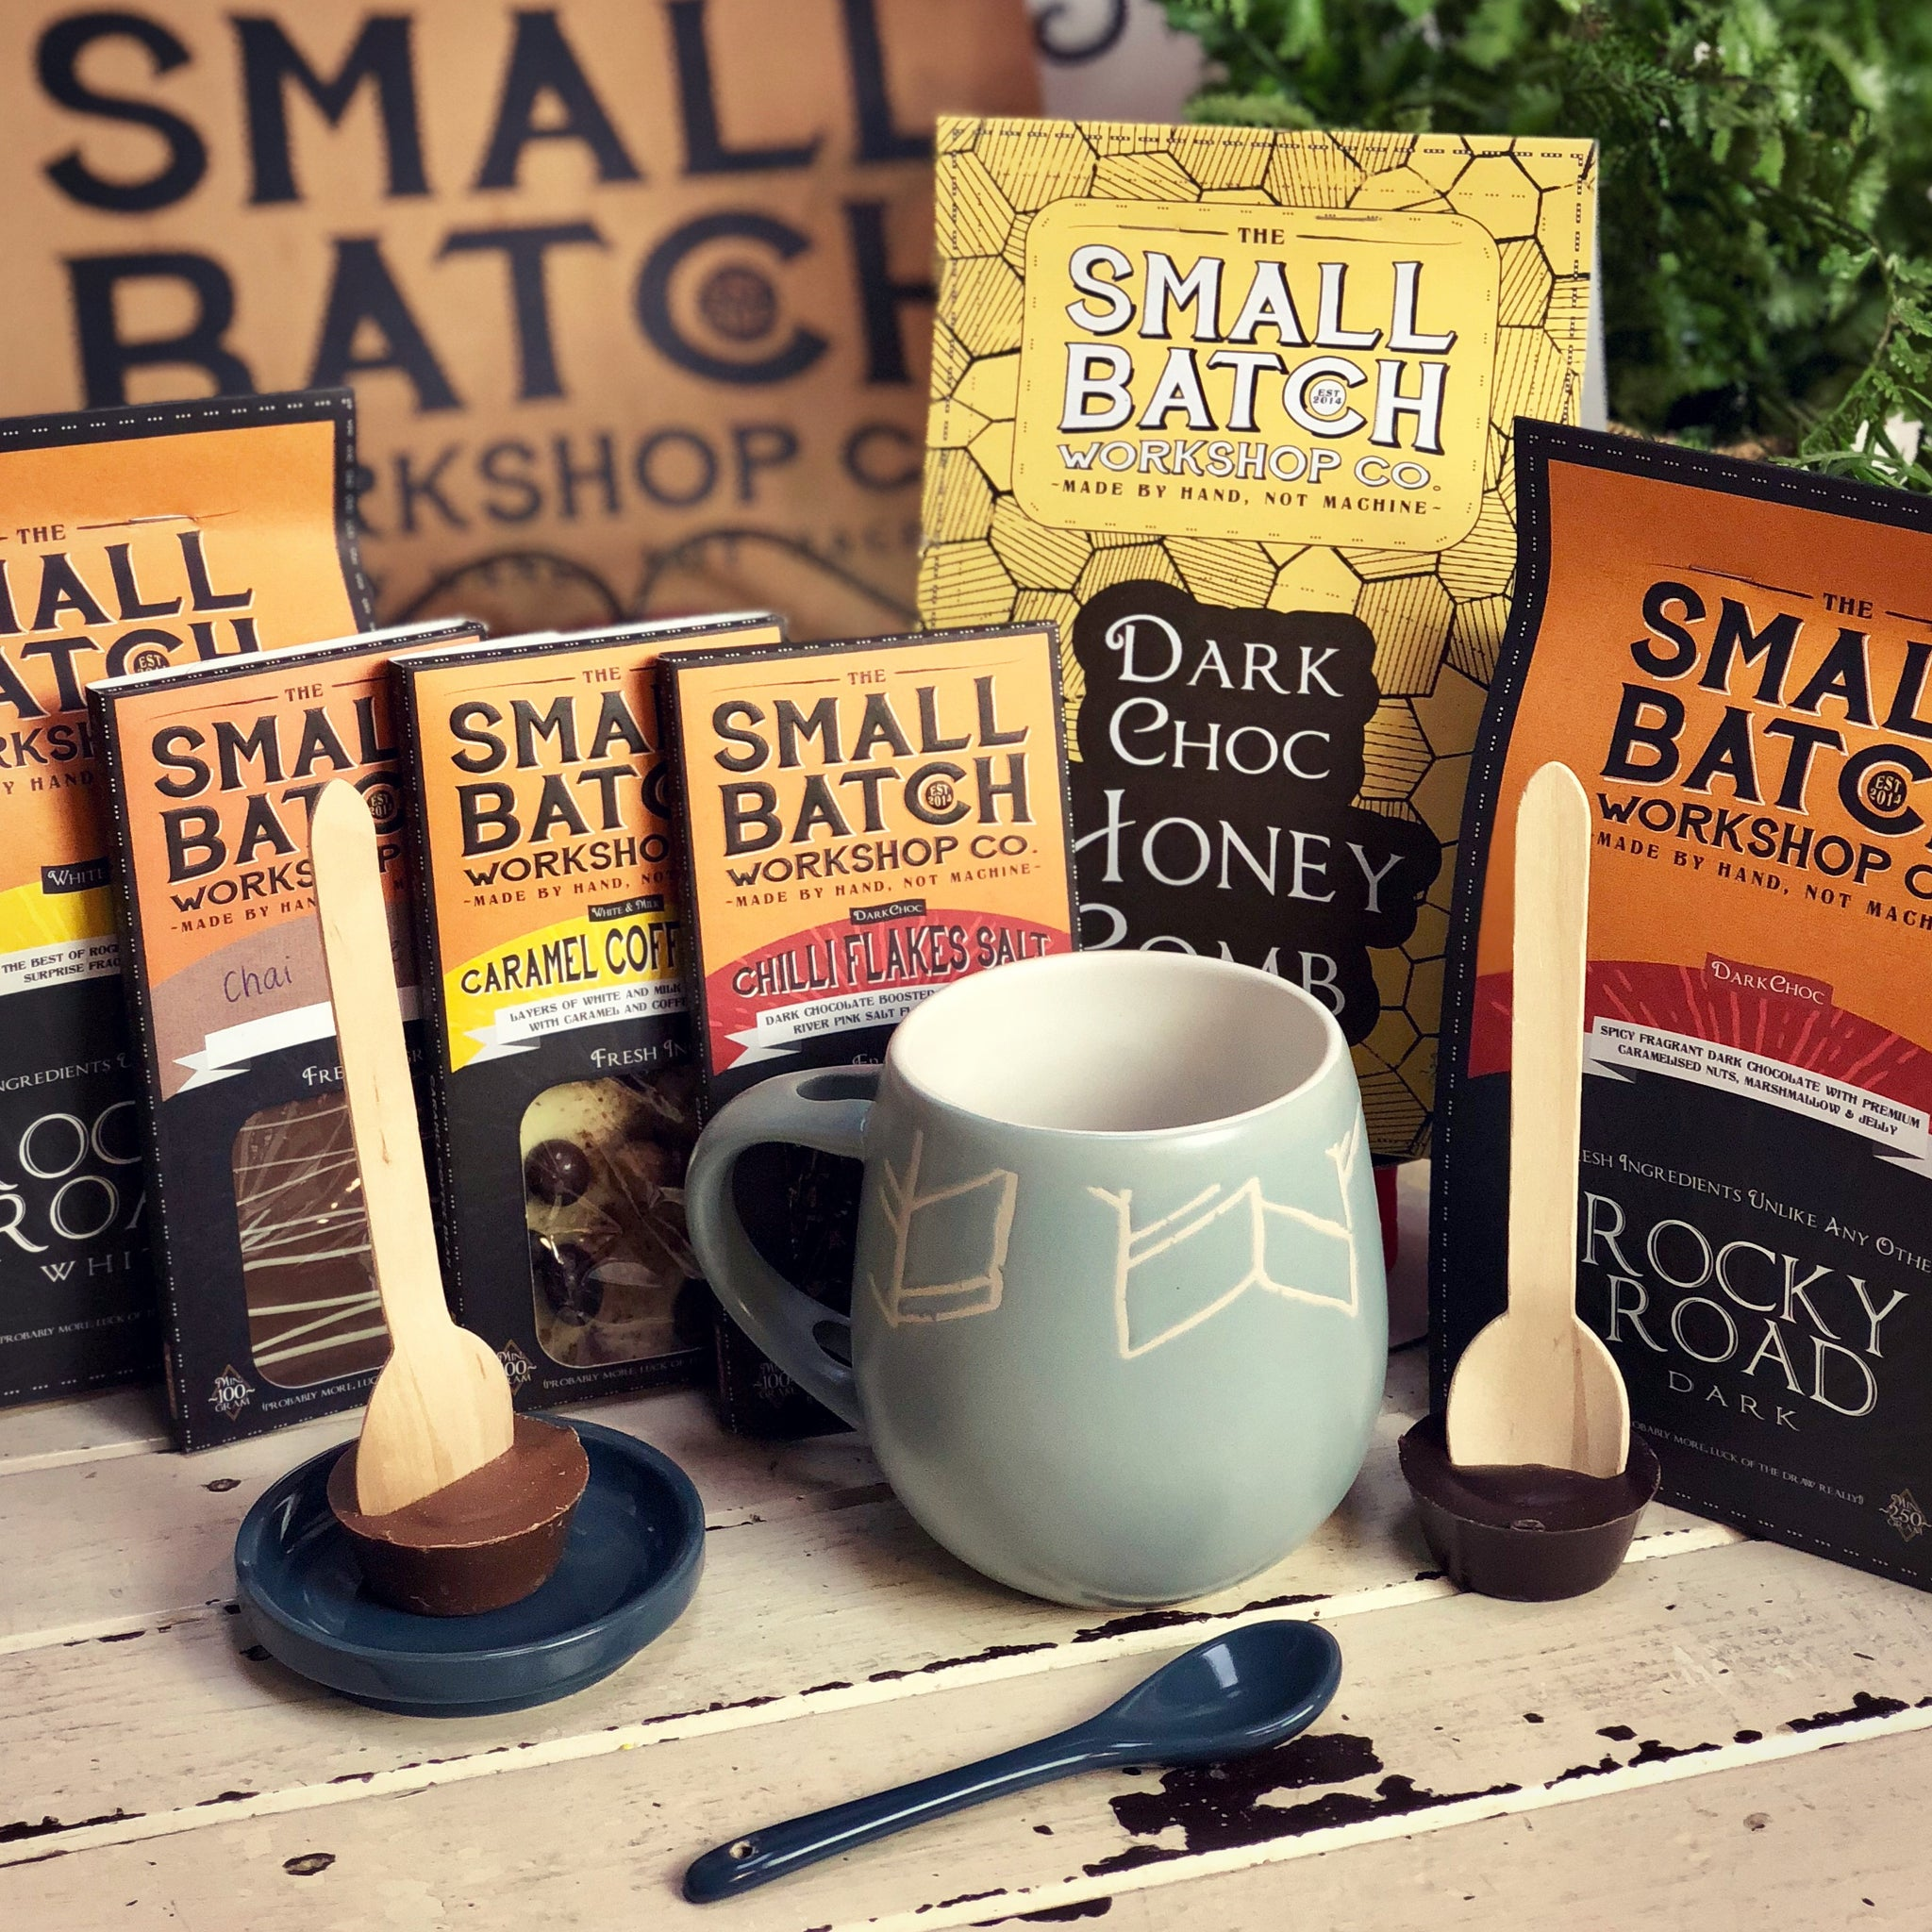 The Small Batch Co Hot Choc Spoon MILK or DARK